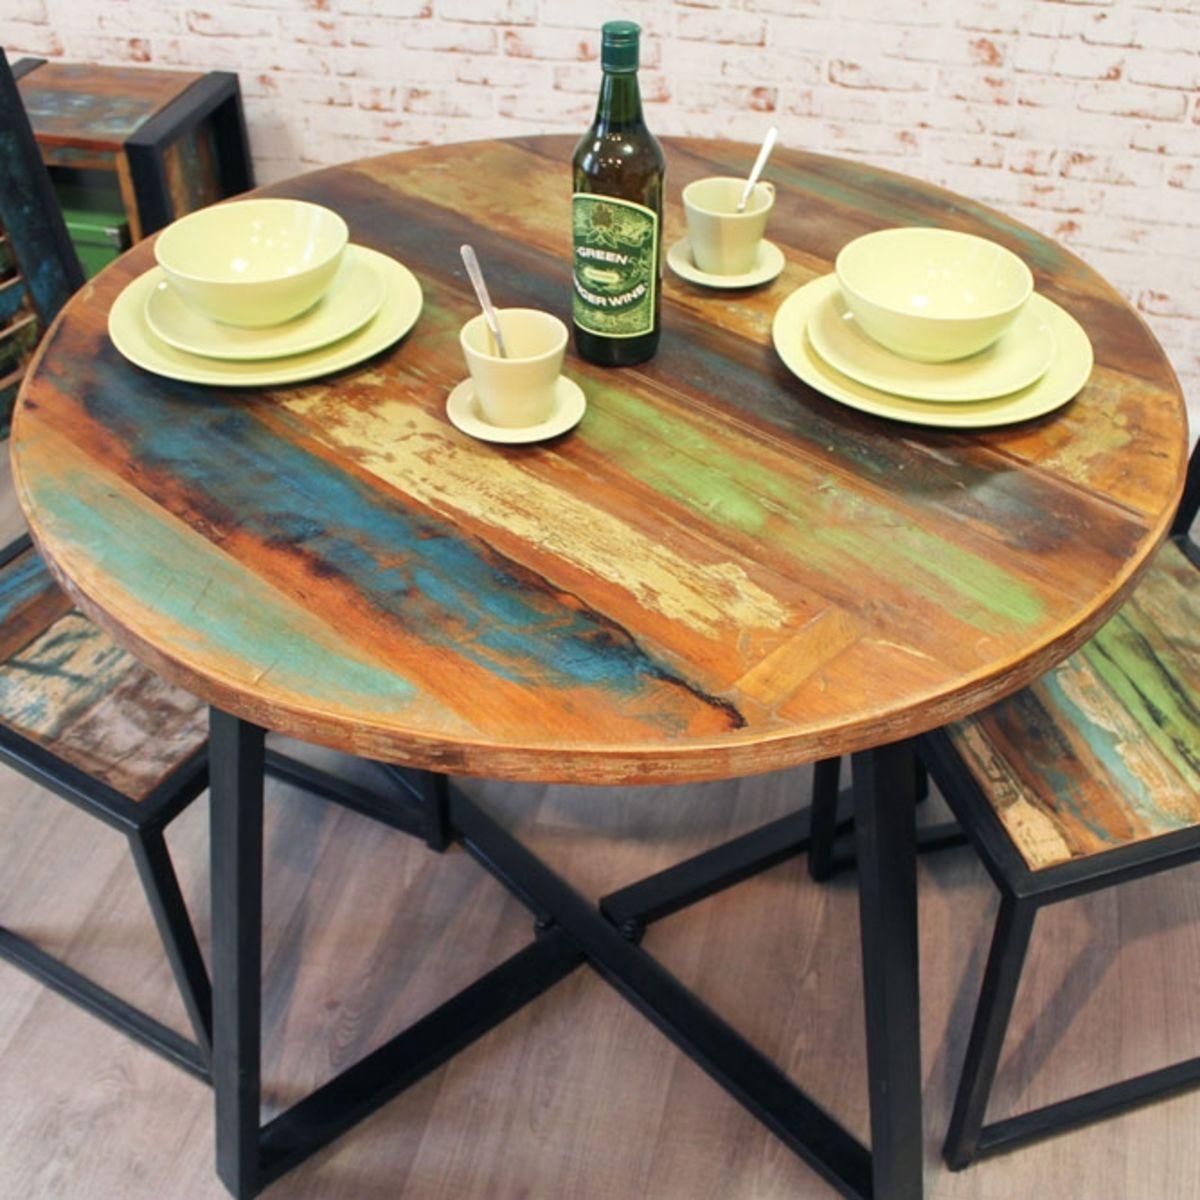 Urban Chic Round Dining Table Set